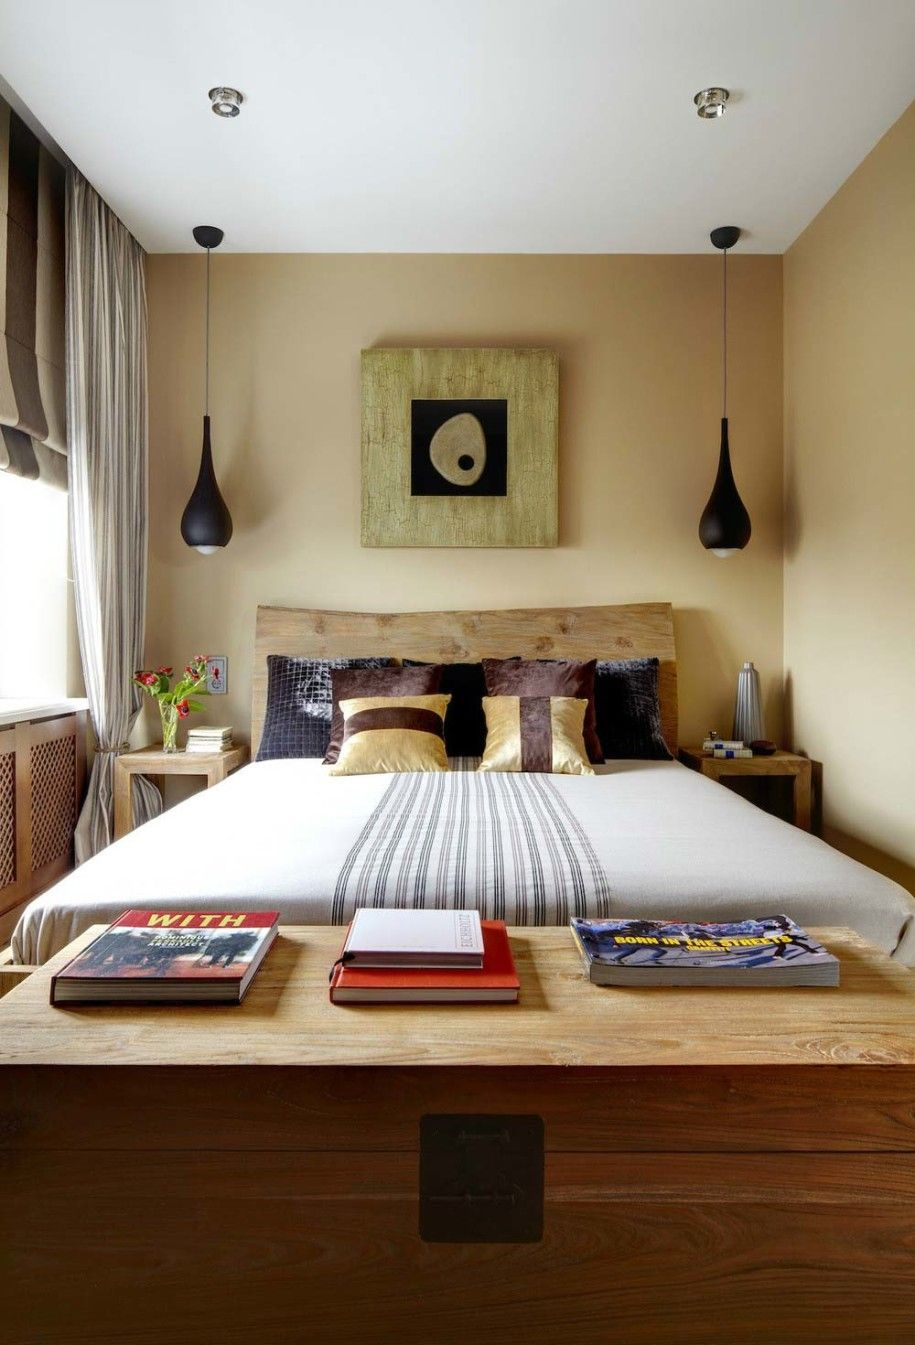 Genial Surprising Small Bedroom Ideas Save The Minimalist Space : Good Ideas For  Small Bedrooms